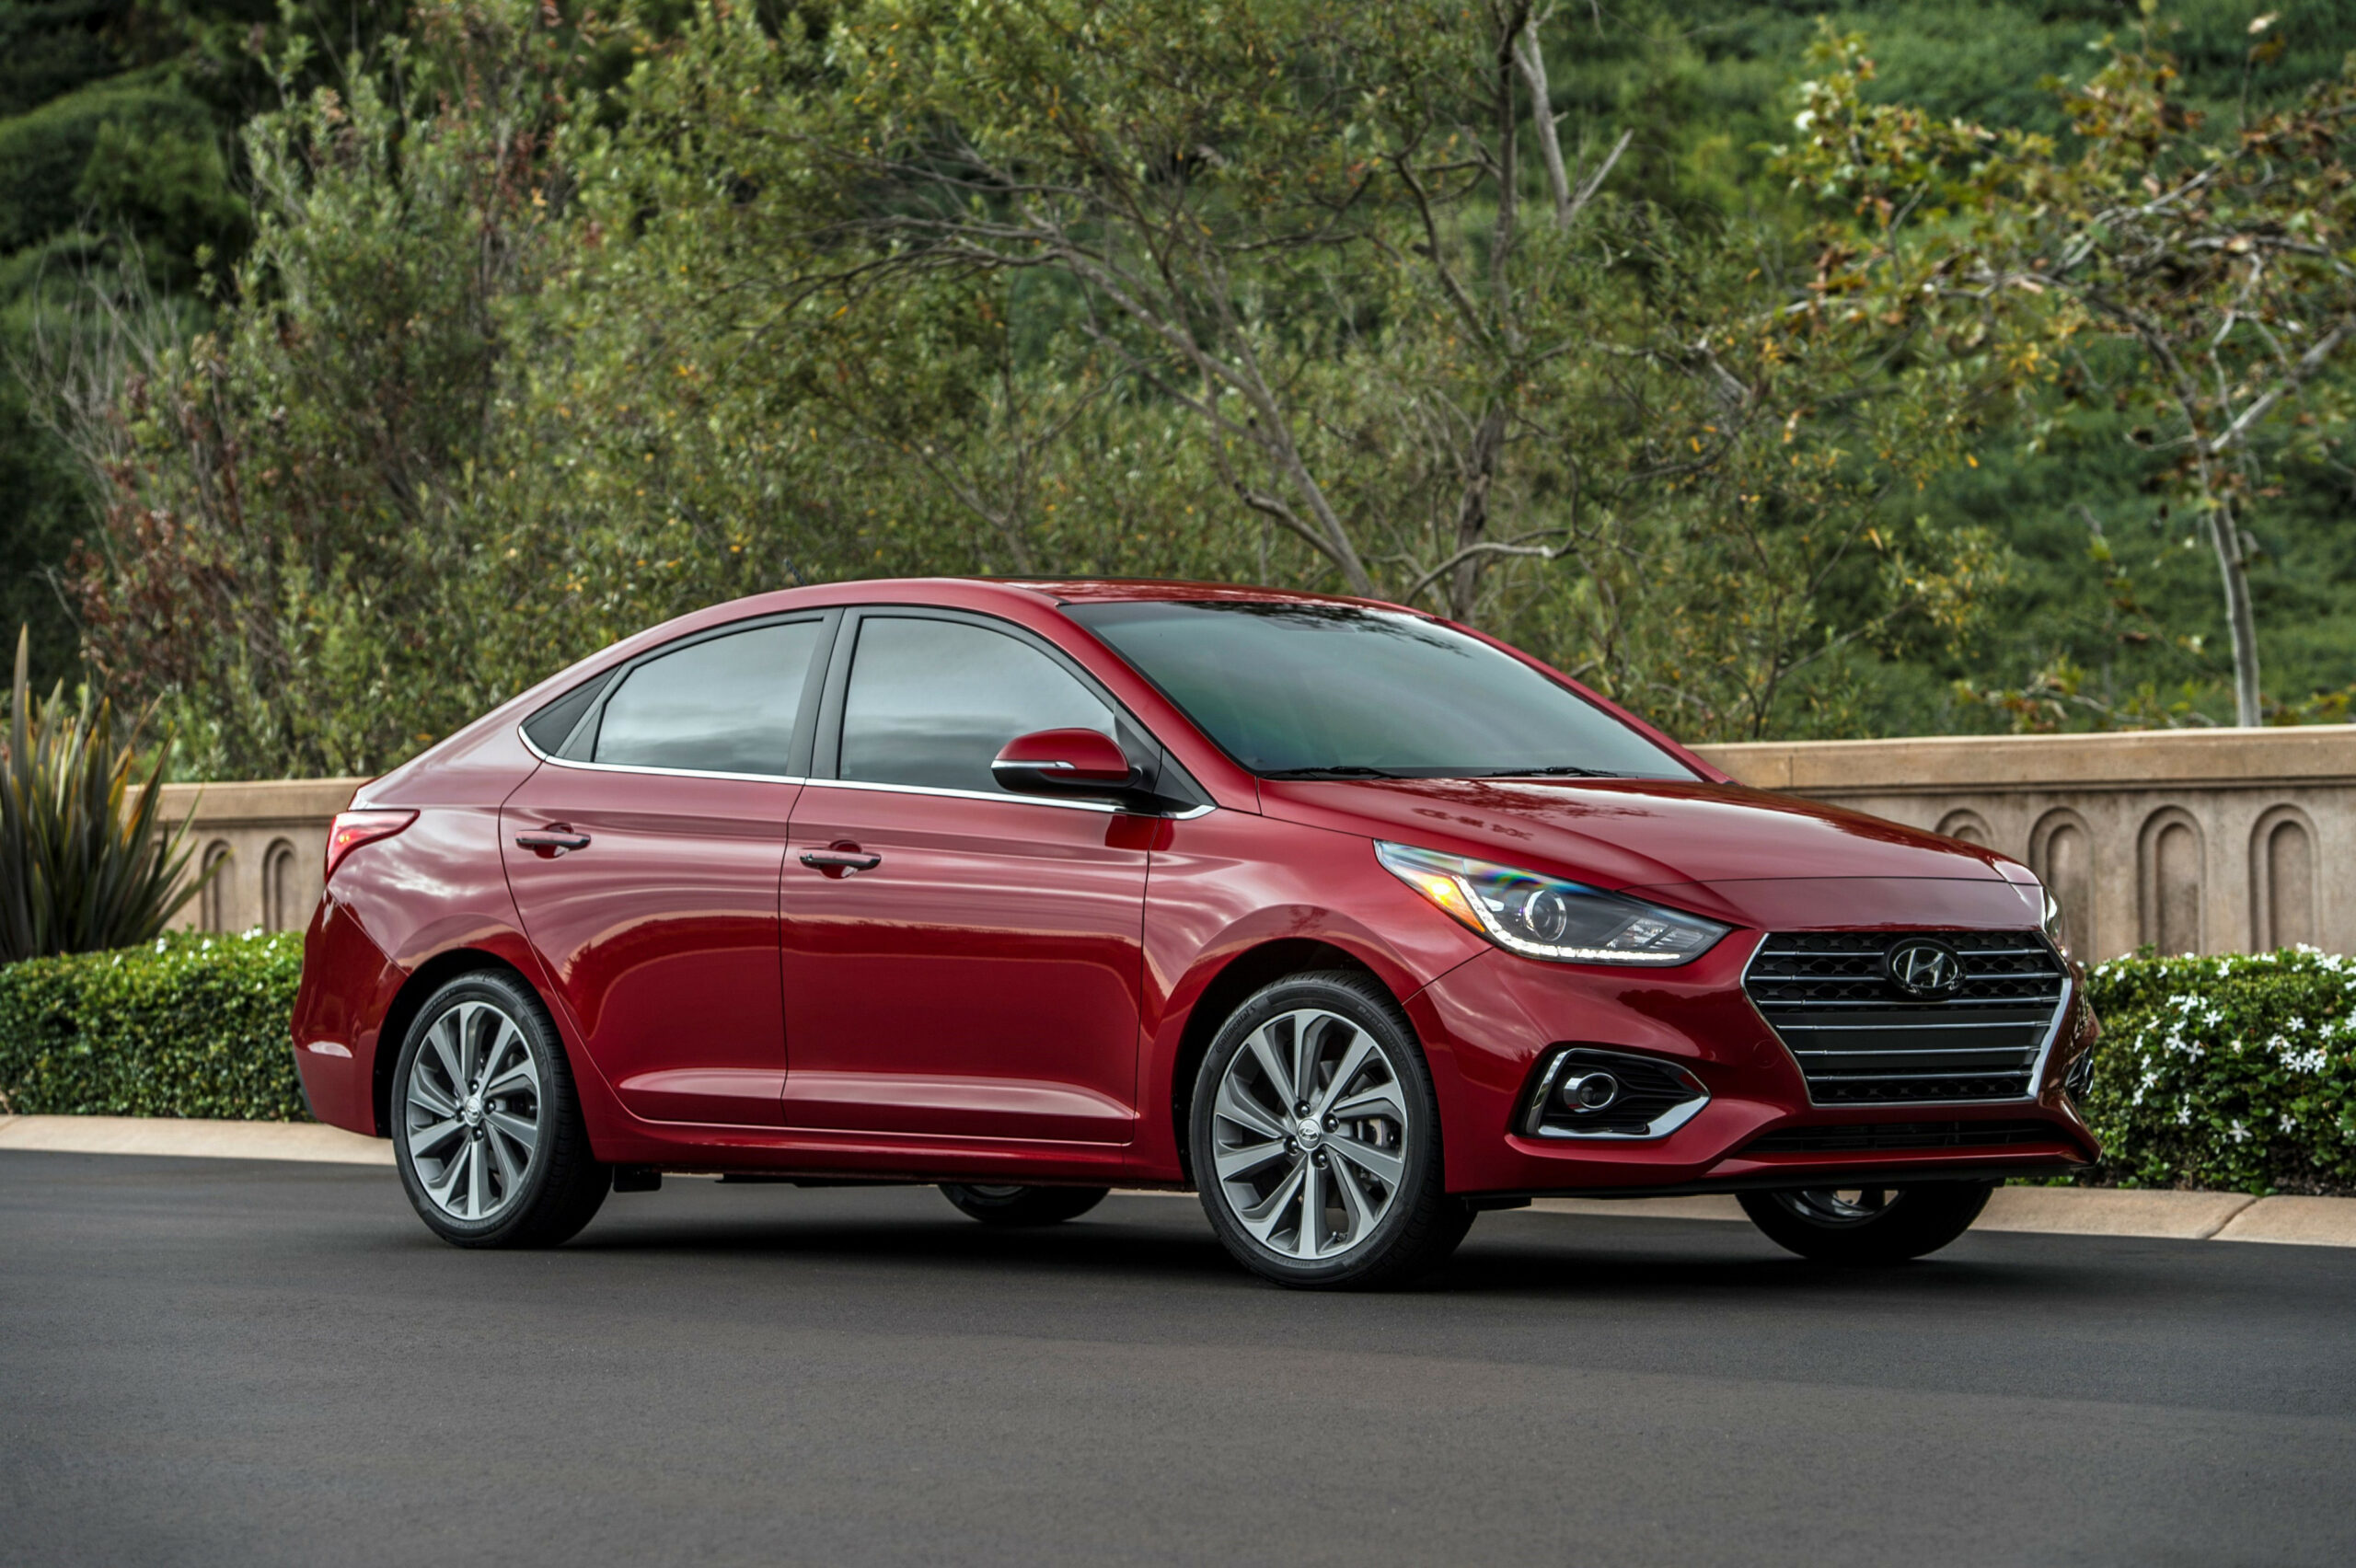 10 Hyundai Accent Review, Pricing, and Specs